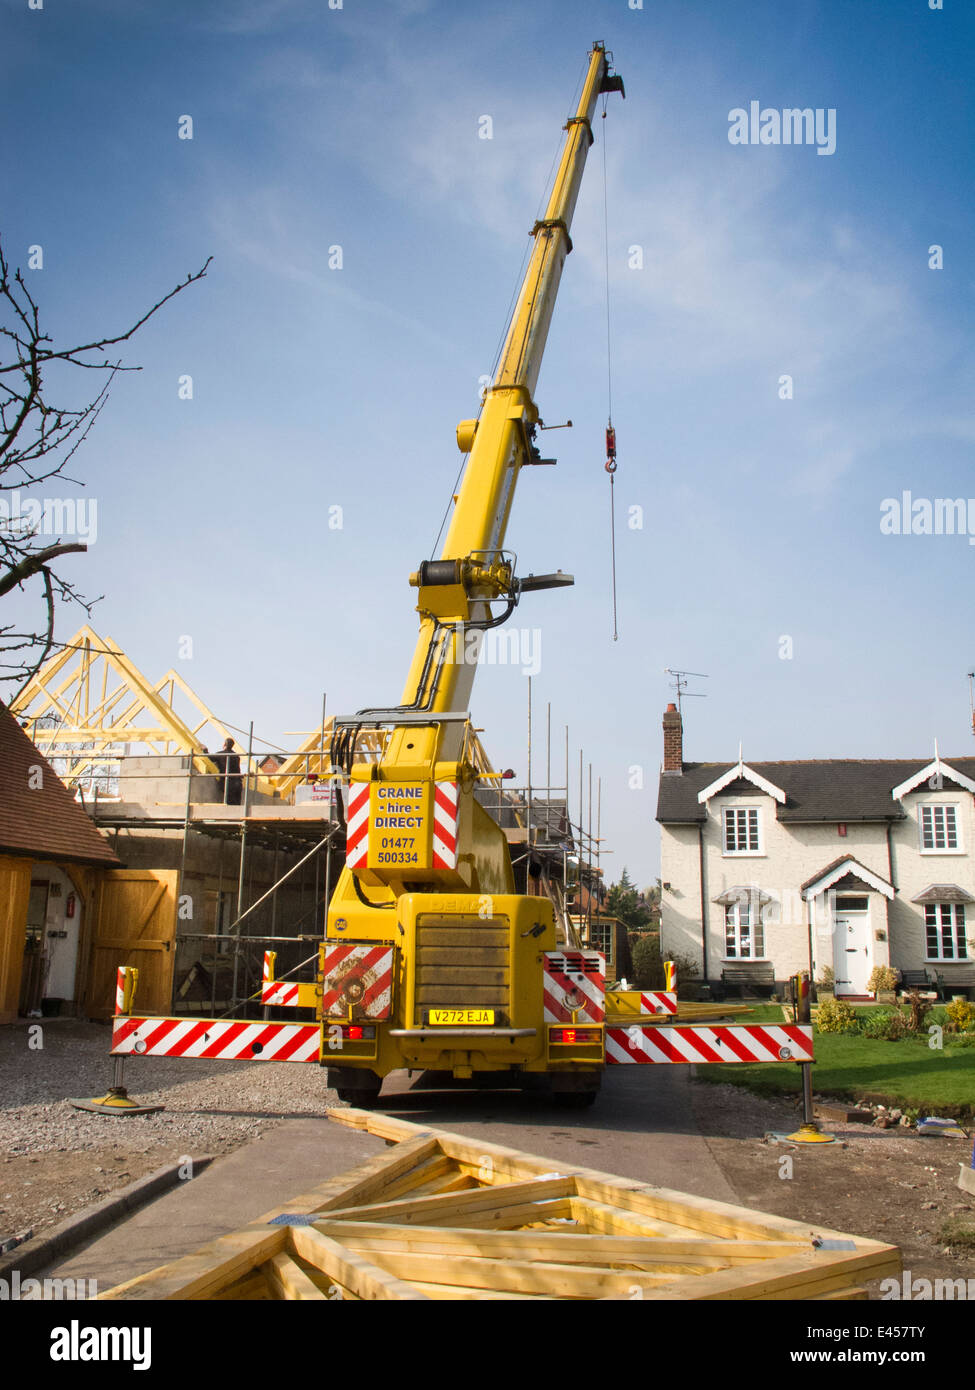 Crane Lifting Timber Stock Photos Amp Crane Lifting Timber